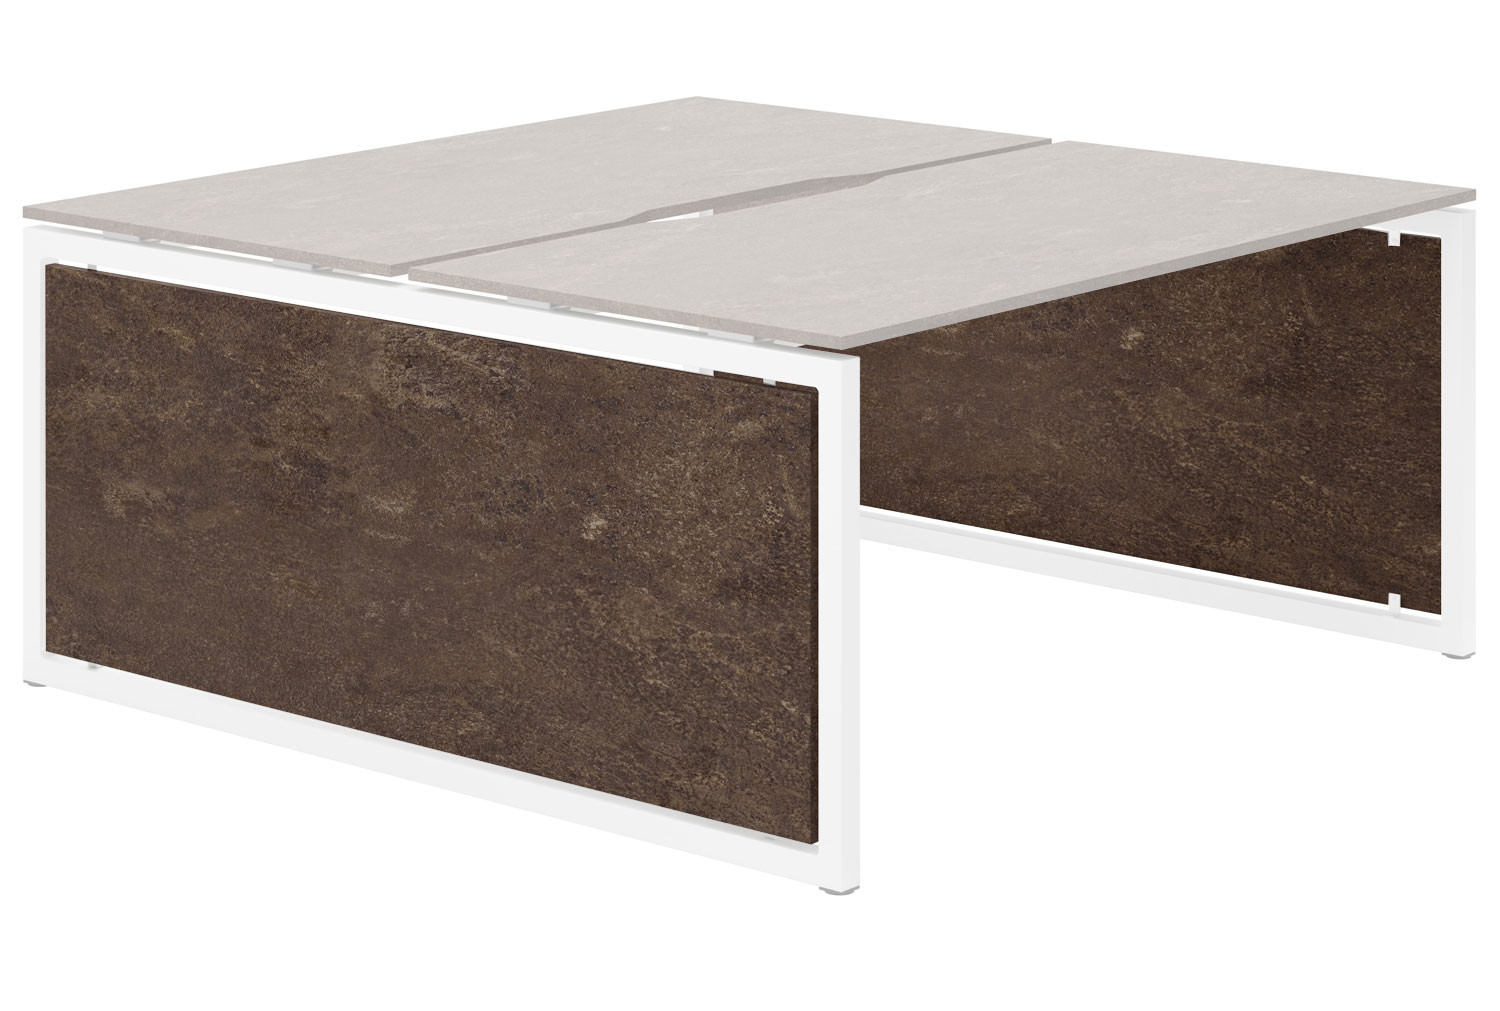 Lasso Infill For Hooped Leg Back To Back Bench Desk (Pitted Steel)